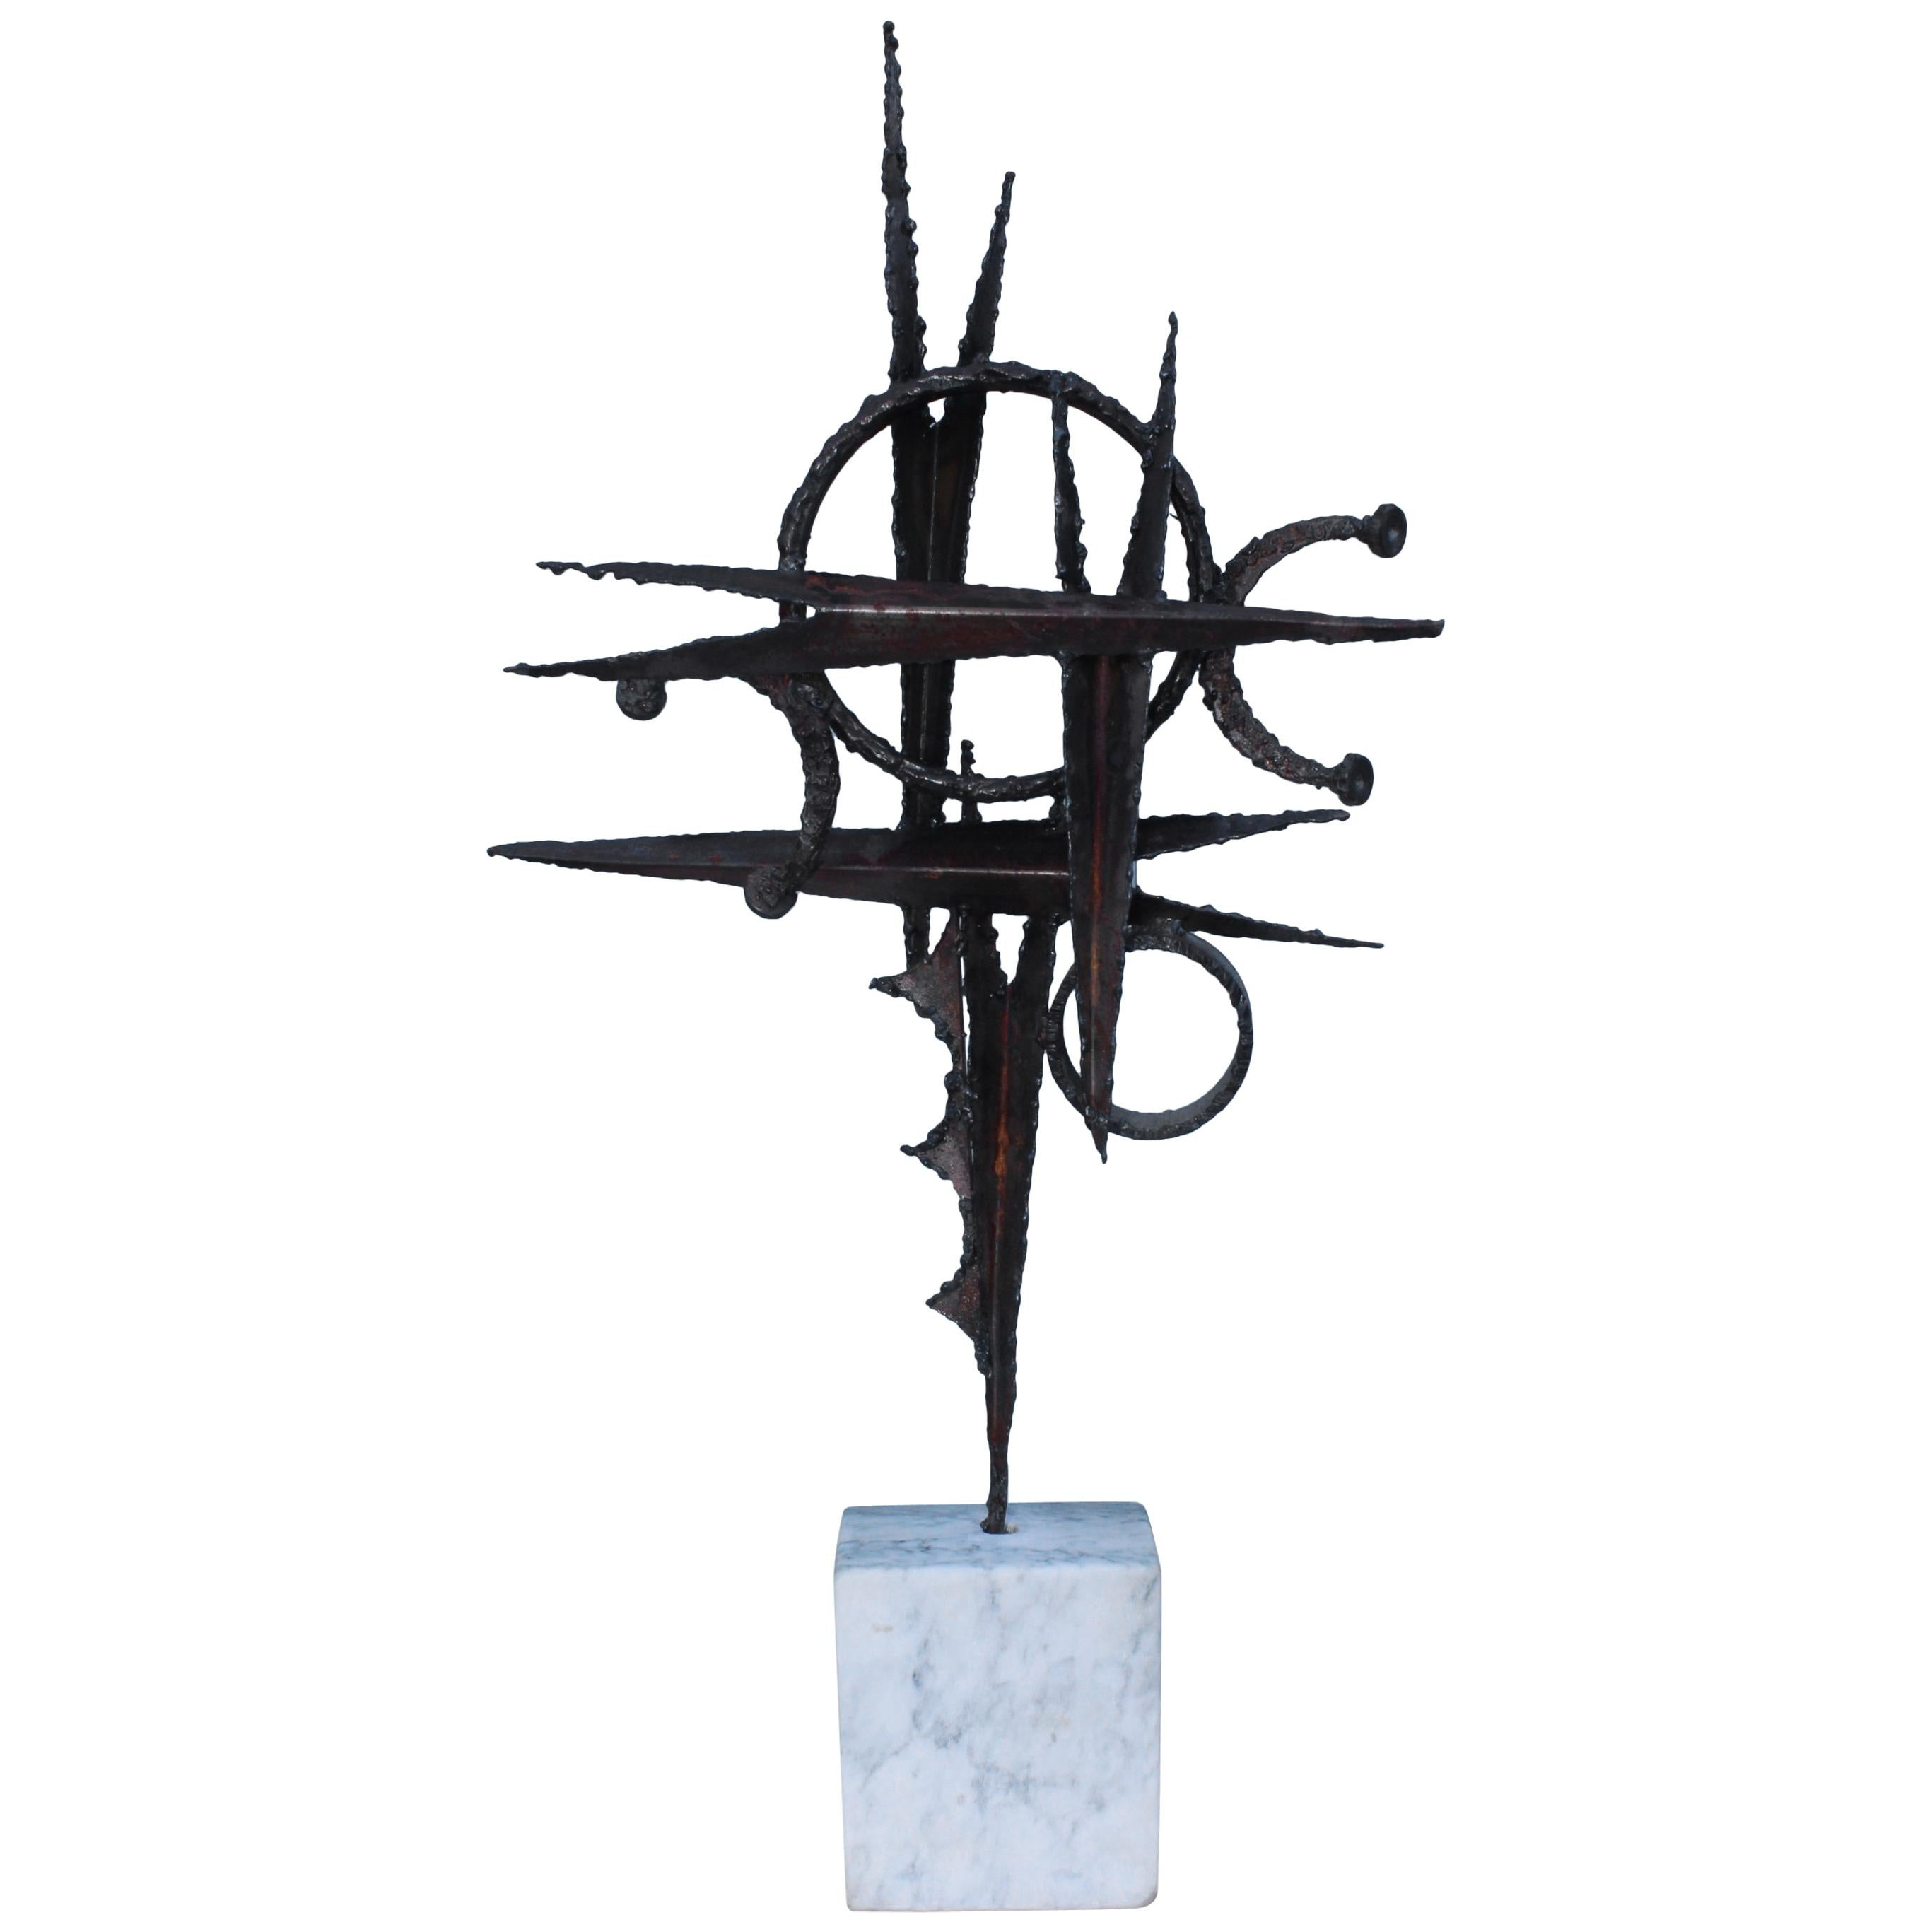 1970s Steel Abstract Table Sculpture